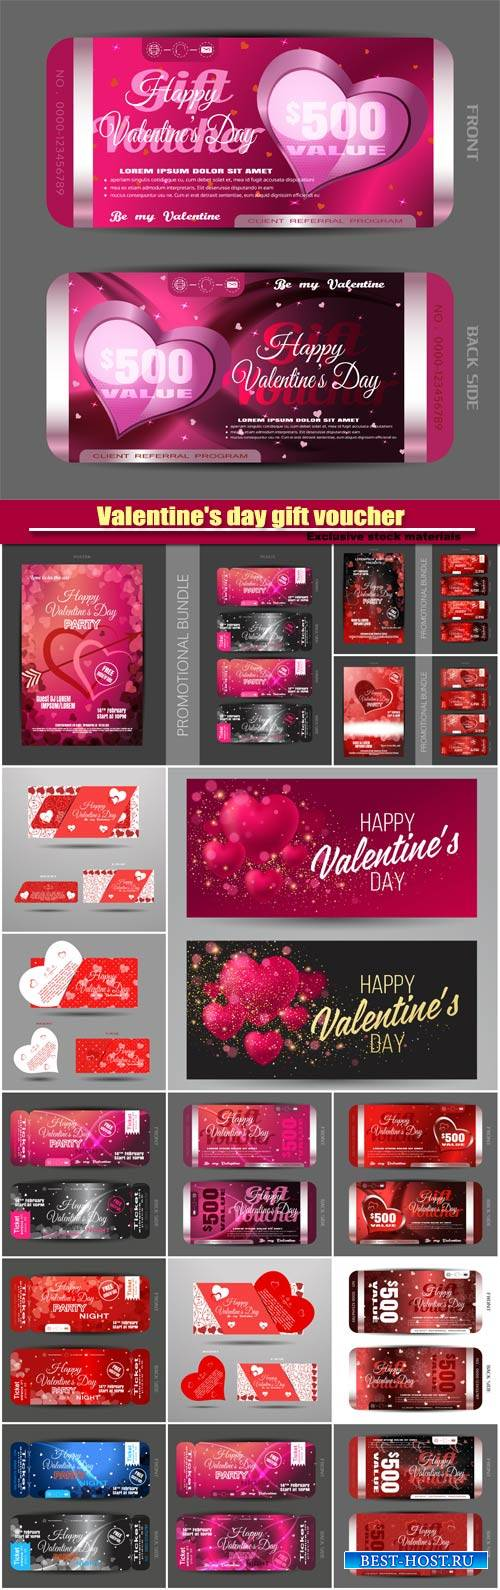 Vector set of greeting card and happy Valentine's day gift voucher